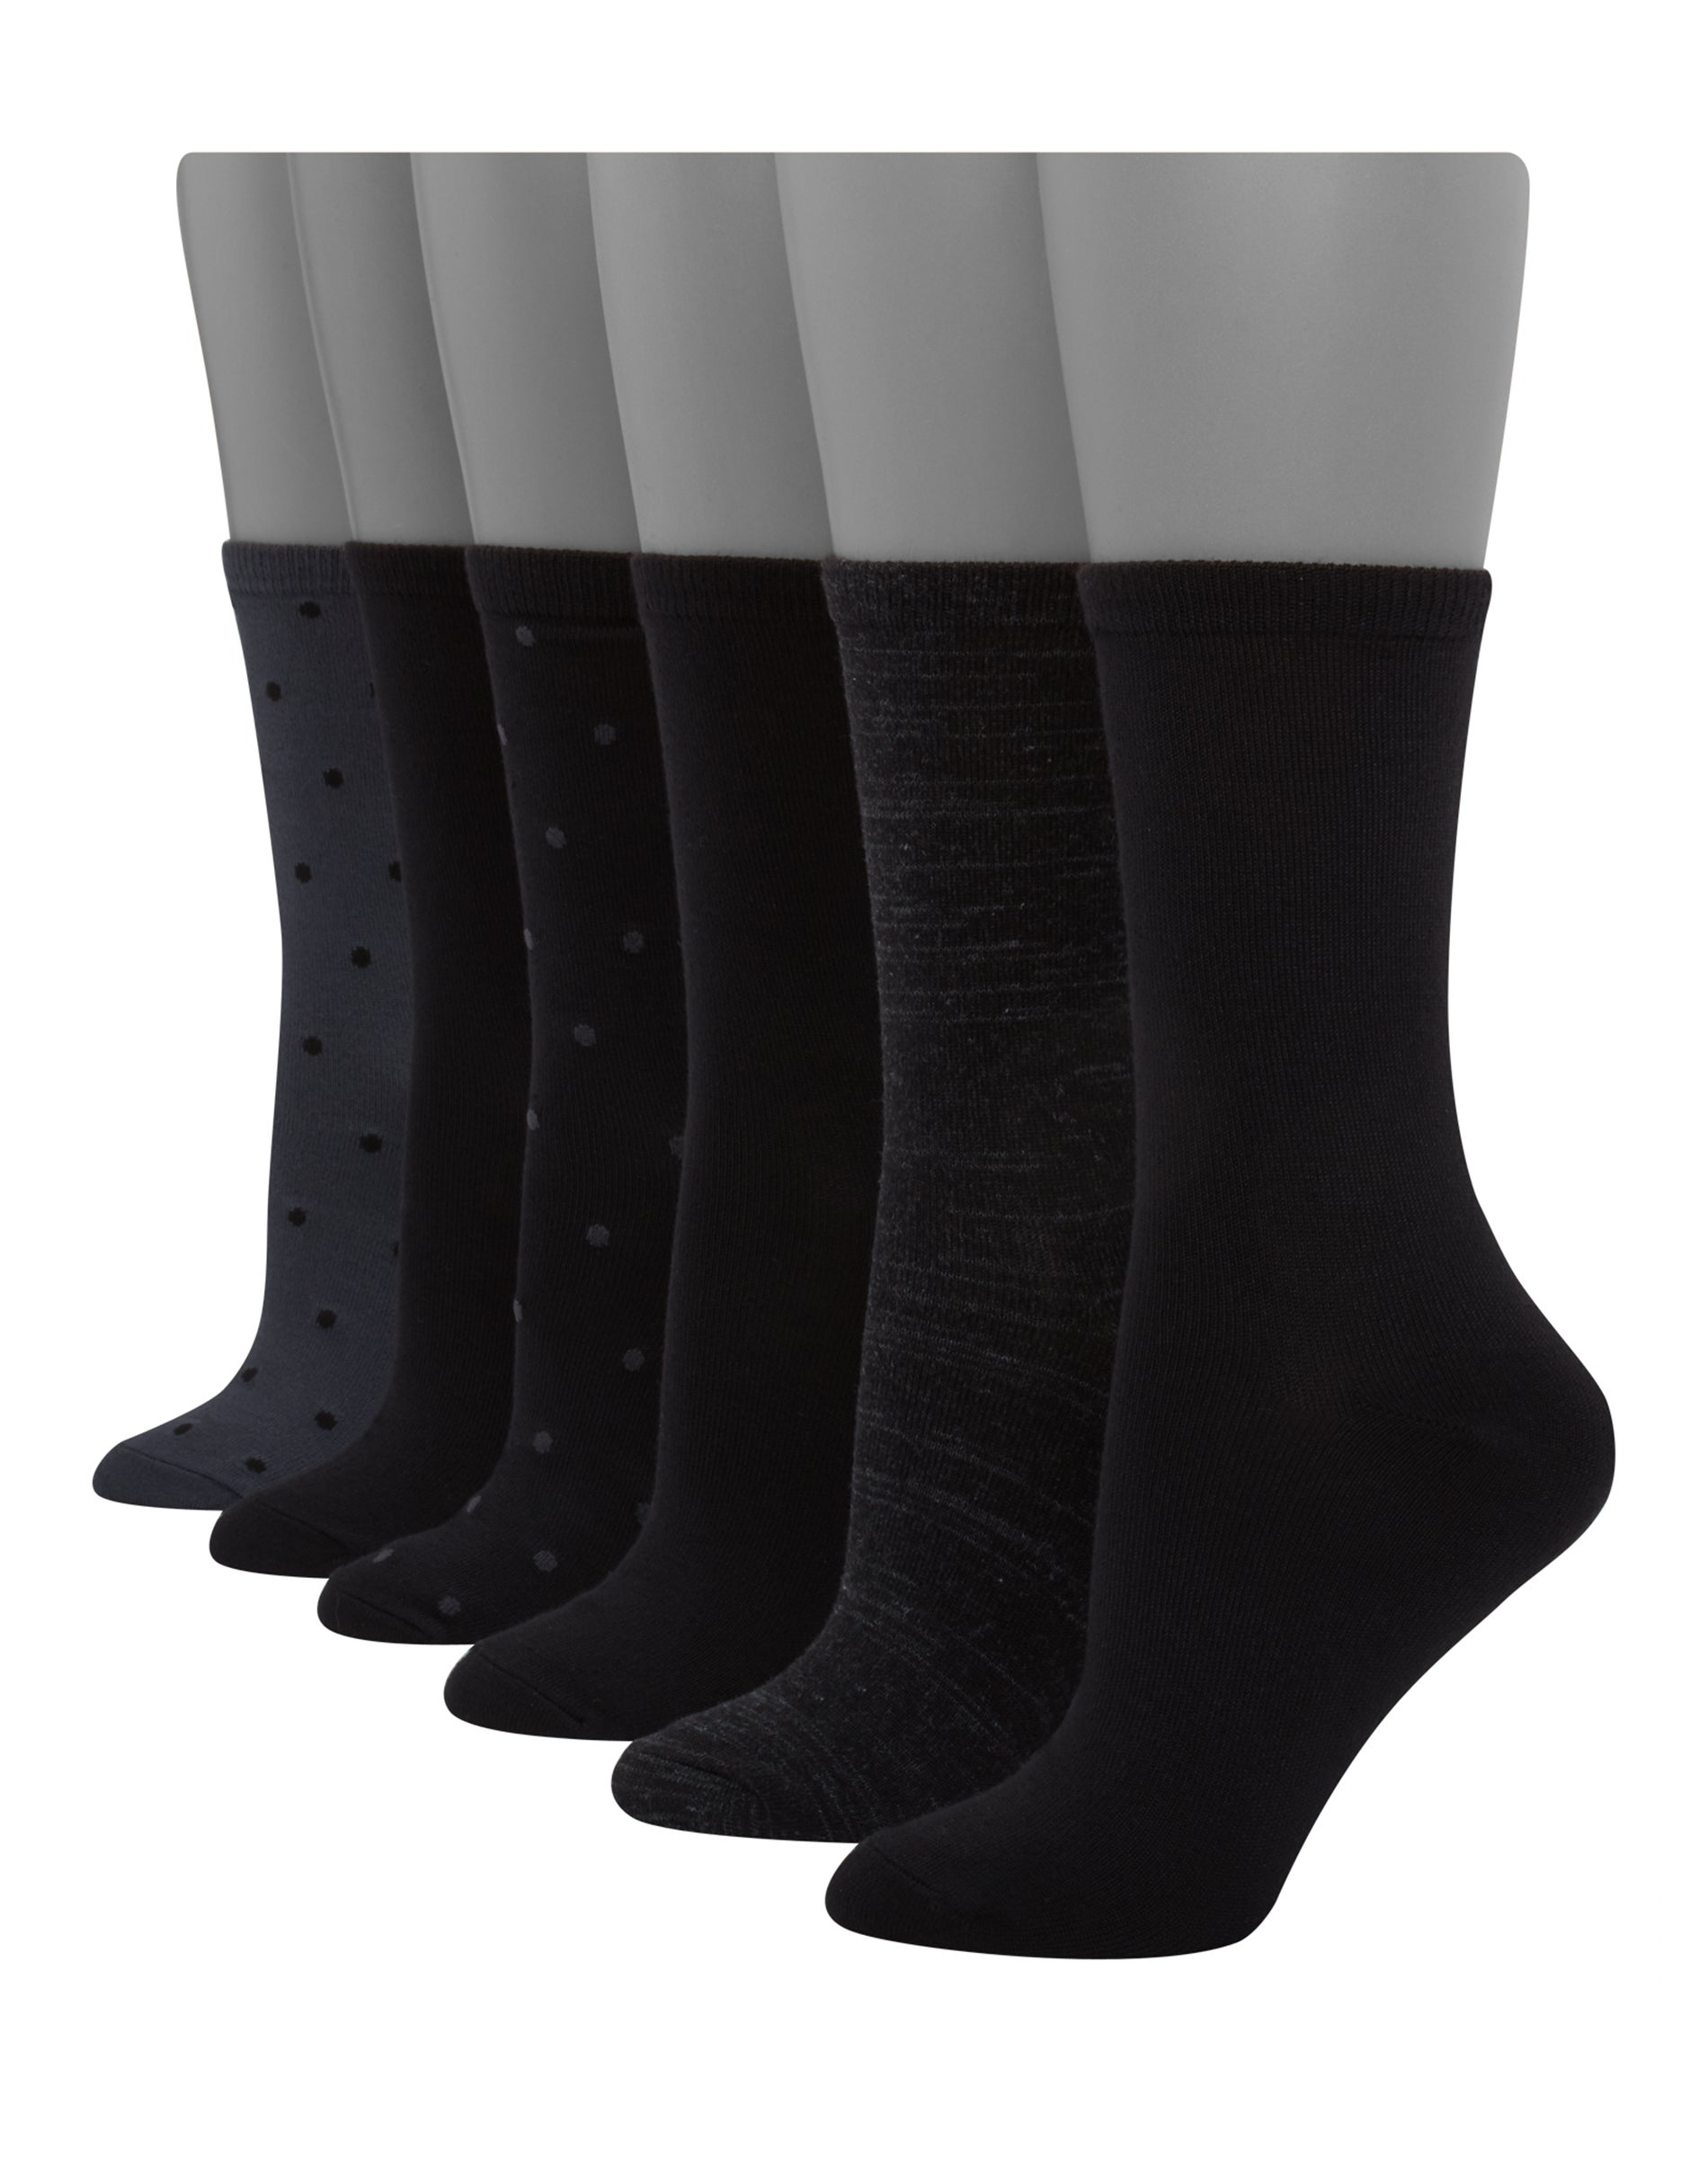 Hanes Womens Casual